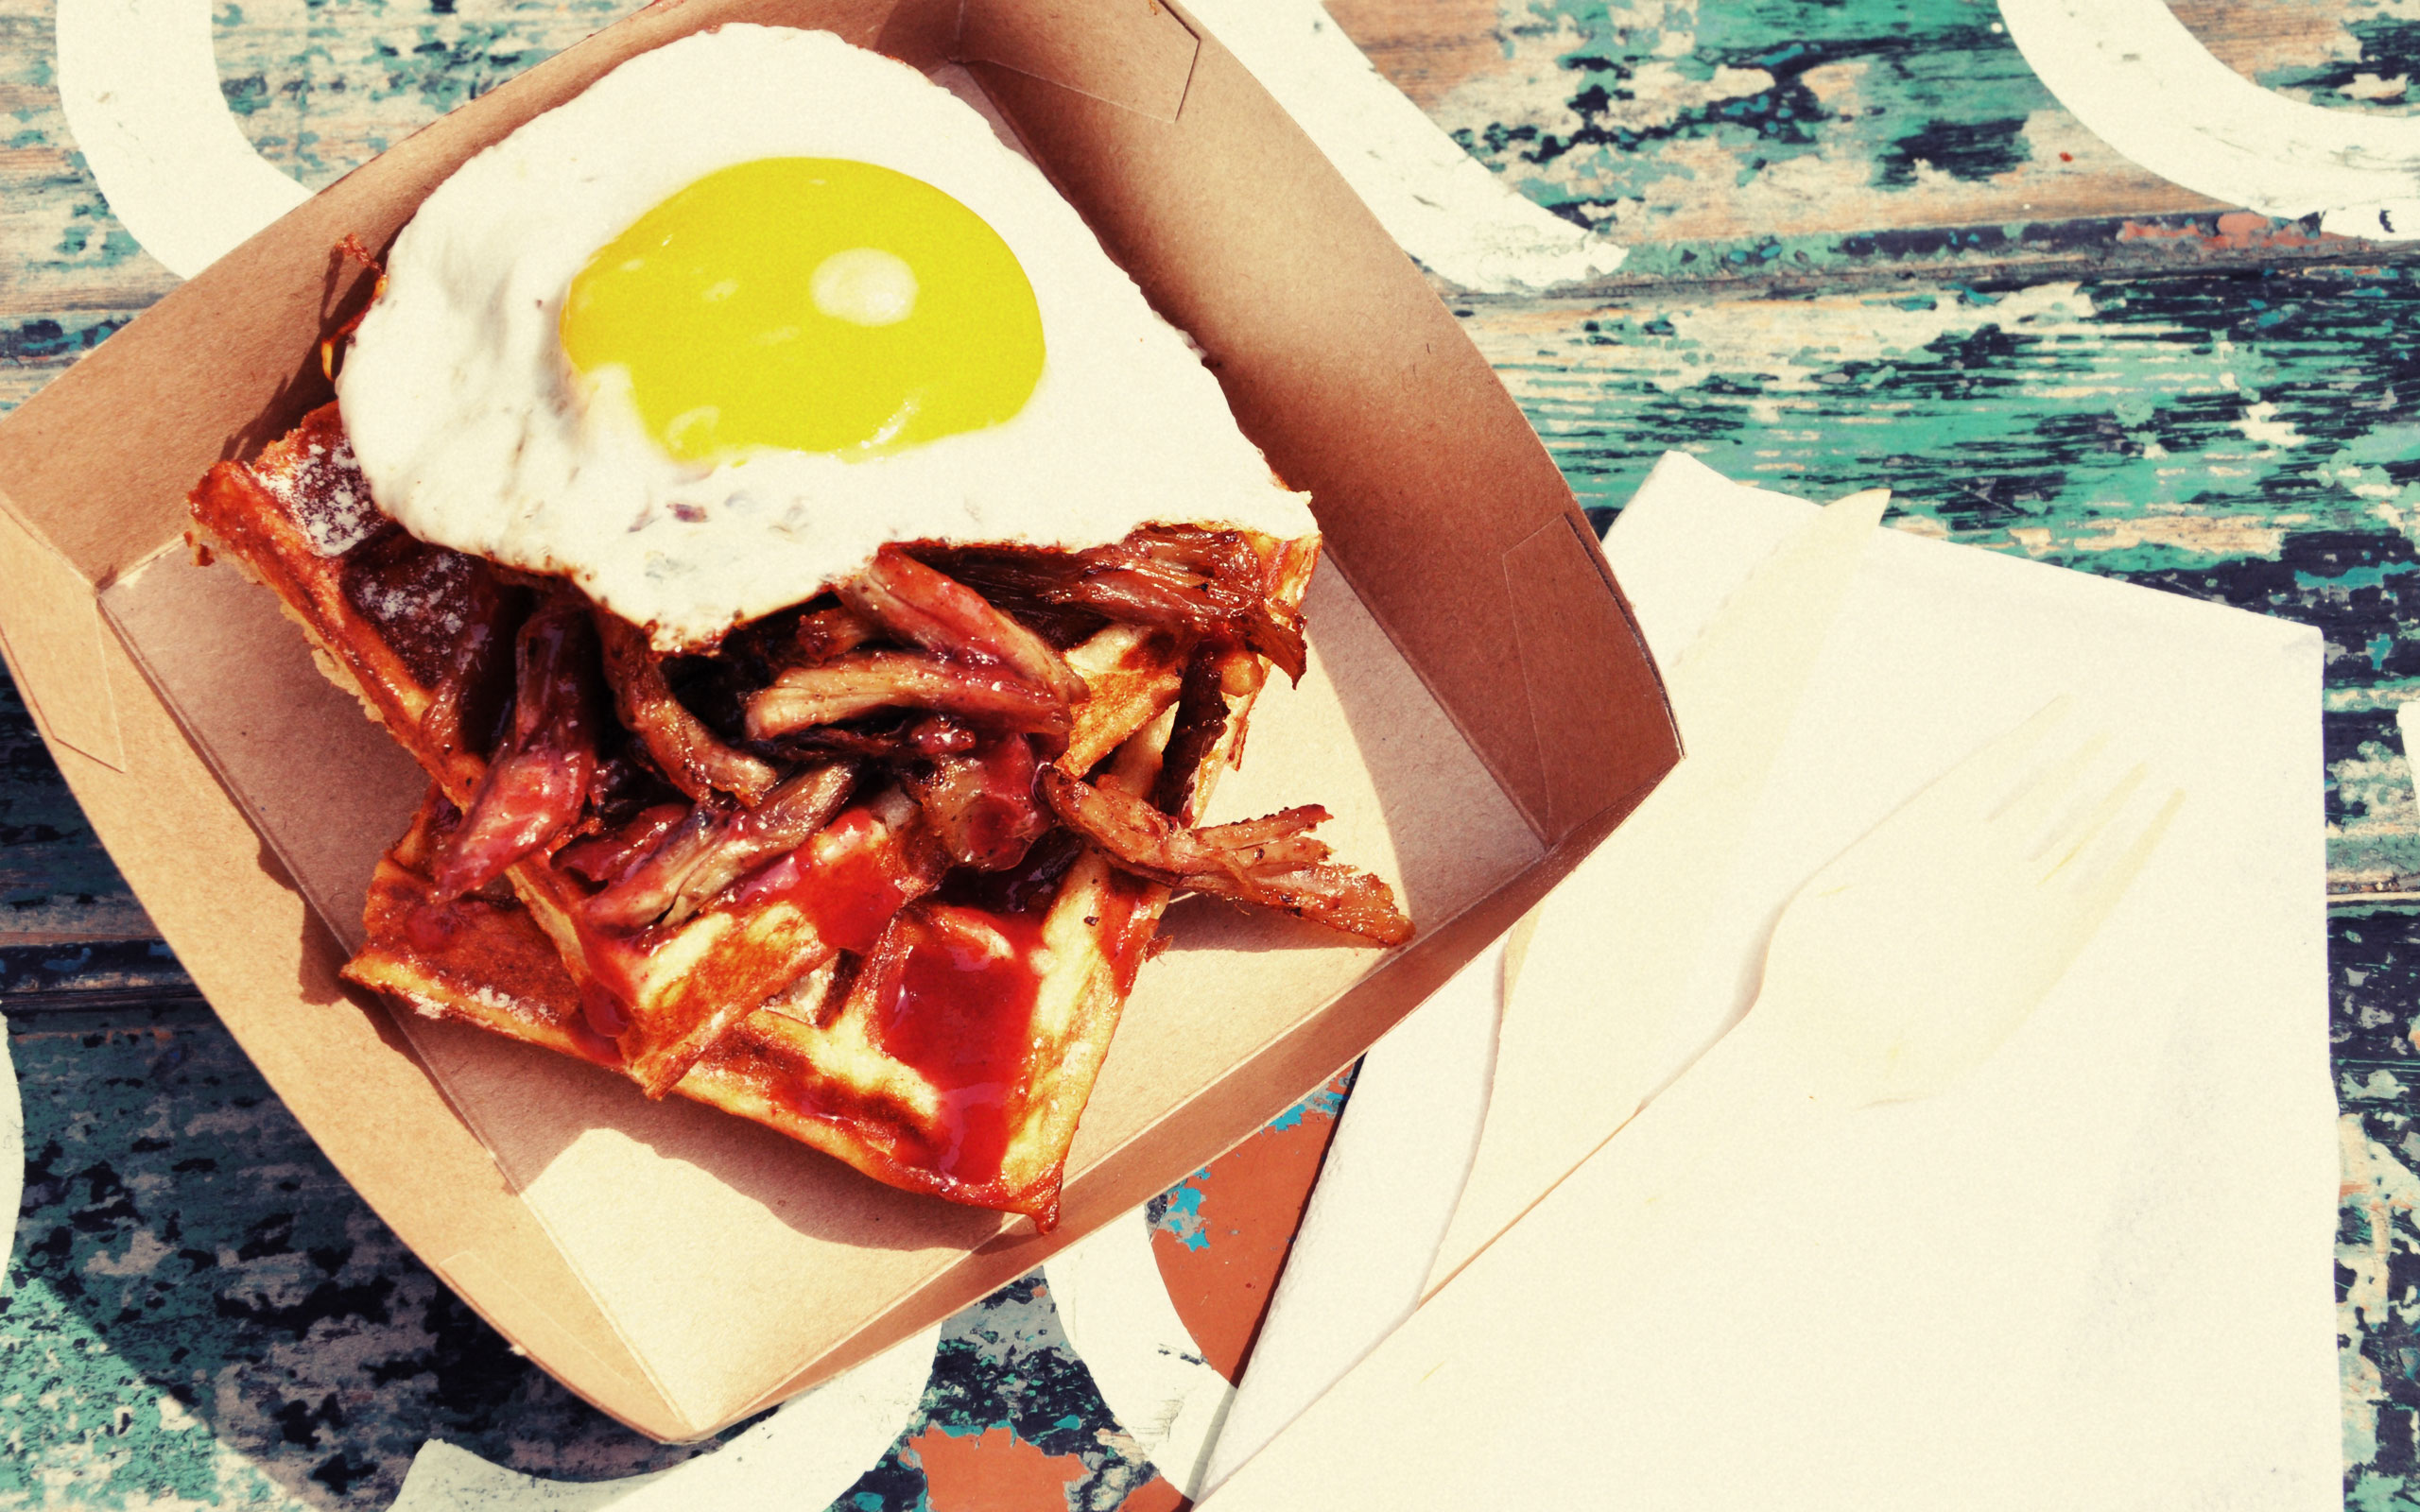 Gourmet Street Foods to Look Out For This Winter